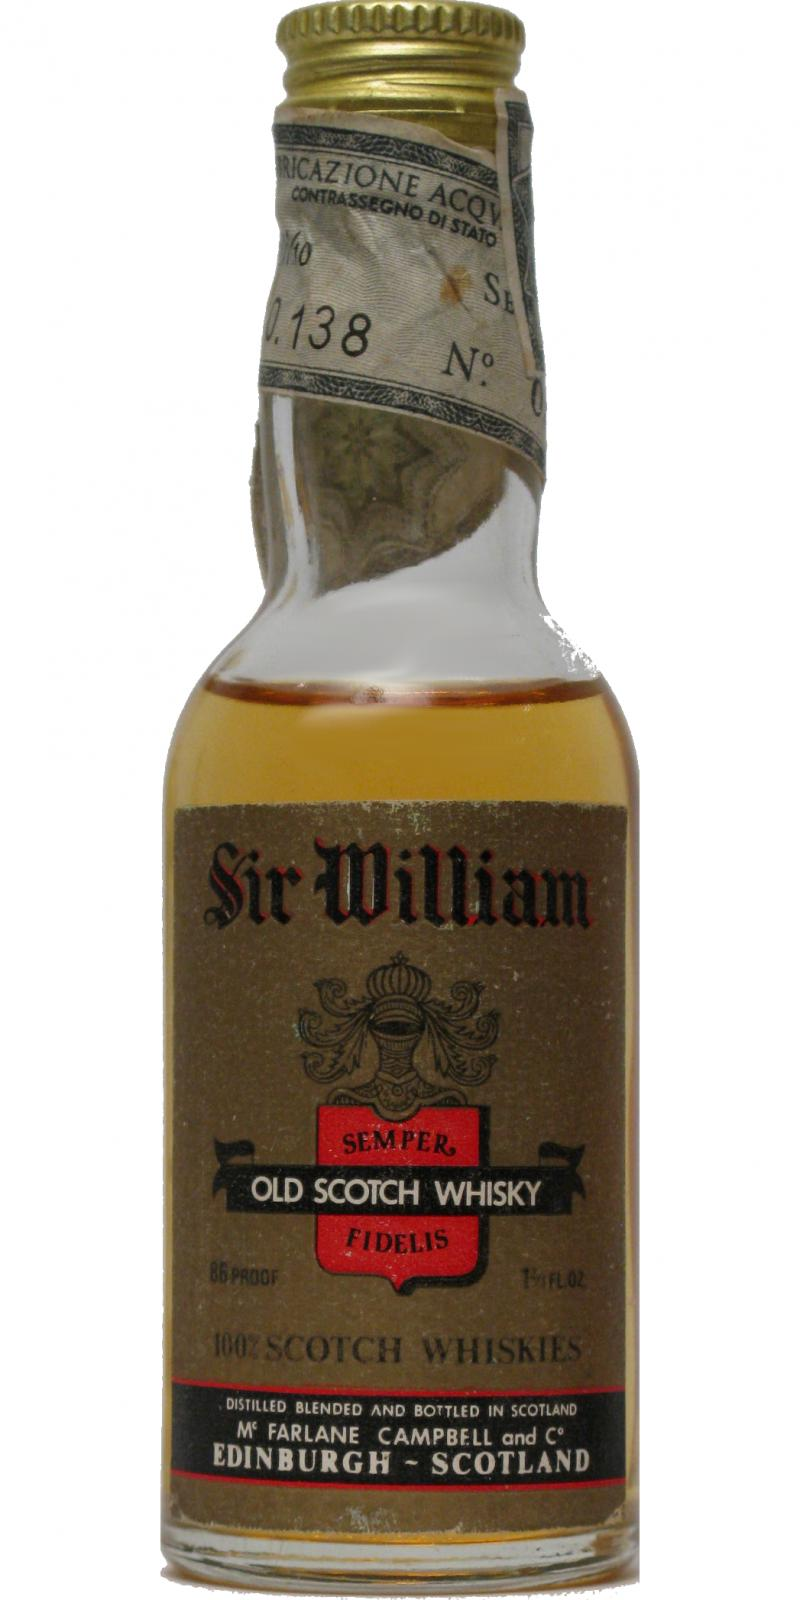 Sir William Old Scotch Whisky